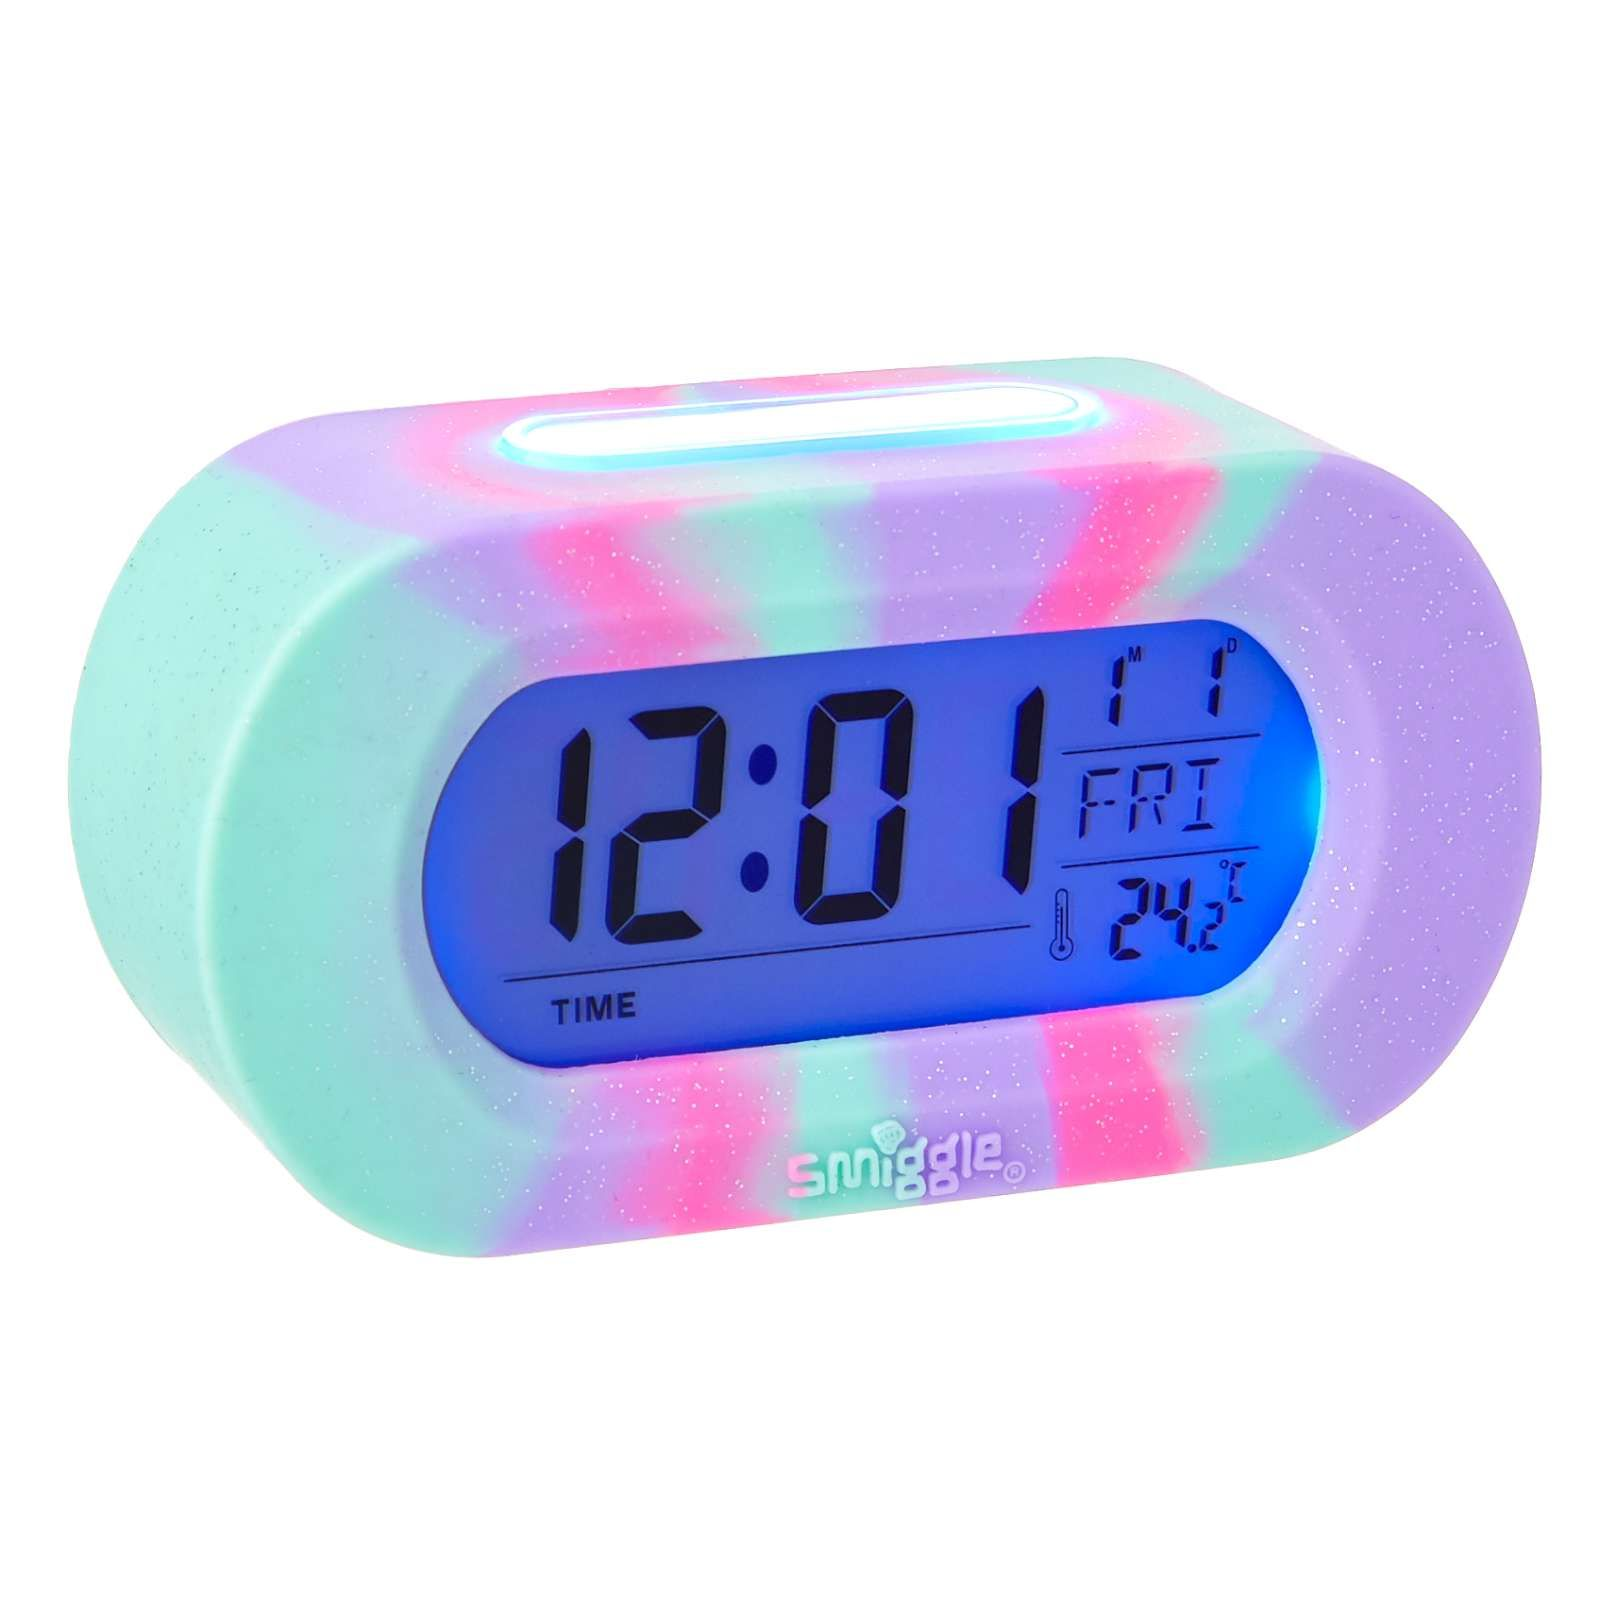 Silicone Rainbow Talking Clock Smiggle Cute Room Decor Unicorn Rooms Unicorn Bedroom